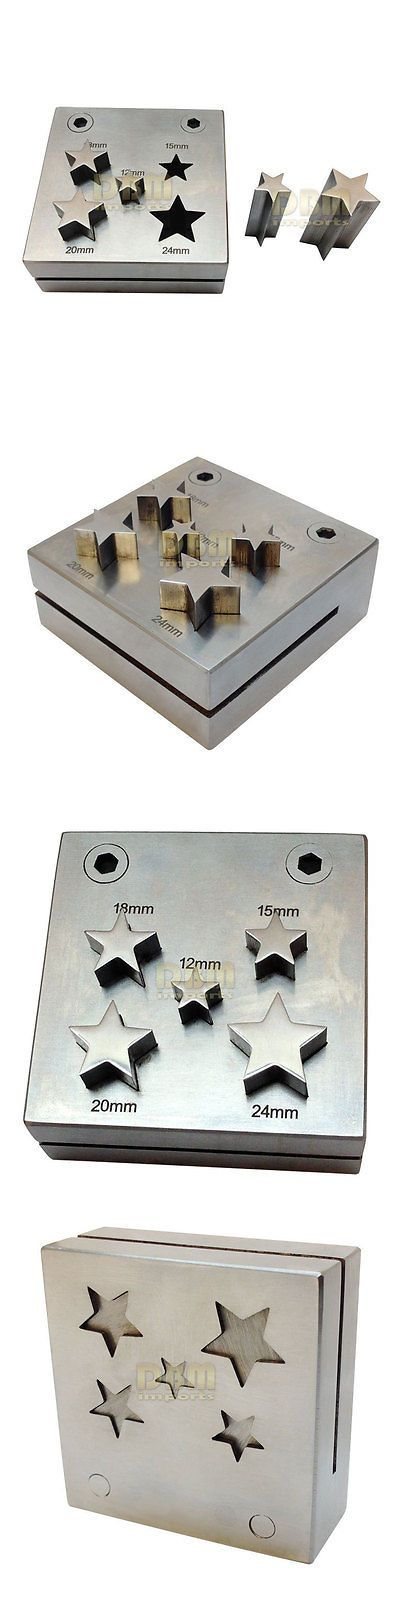 Punches and Stamps 179258: 5 Pc Star Shape Metal Punch Disc Cutter 12 - 24Mm Jewelry Hole Puncher Tool BUY IT NOW ONLY: $189.97